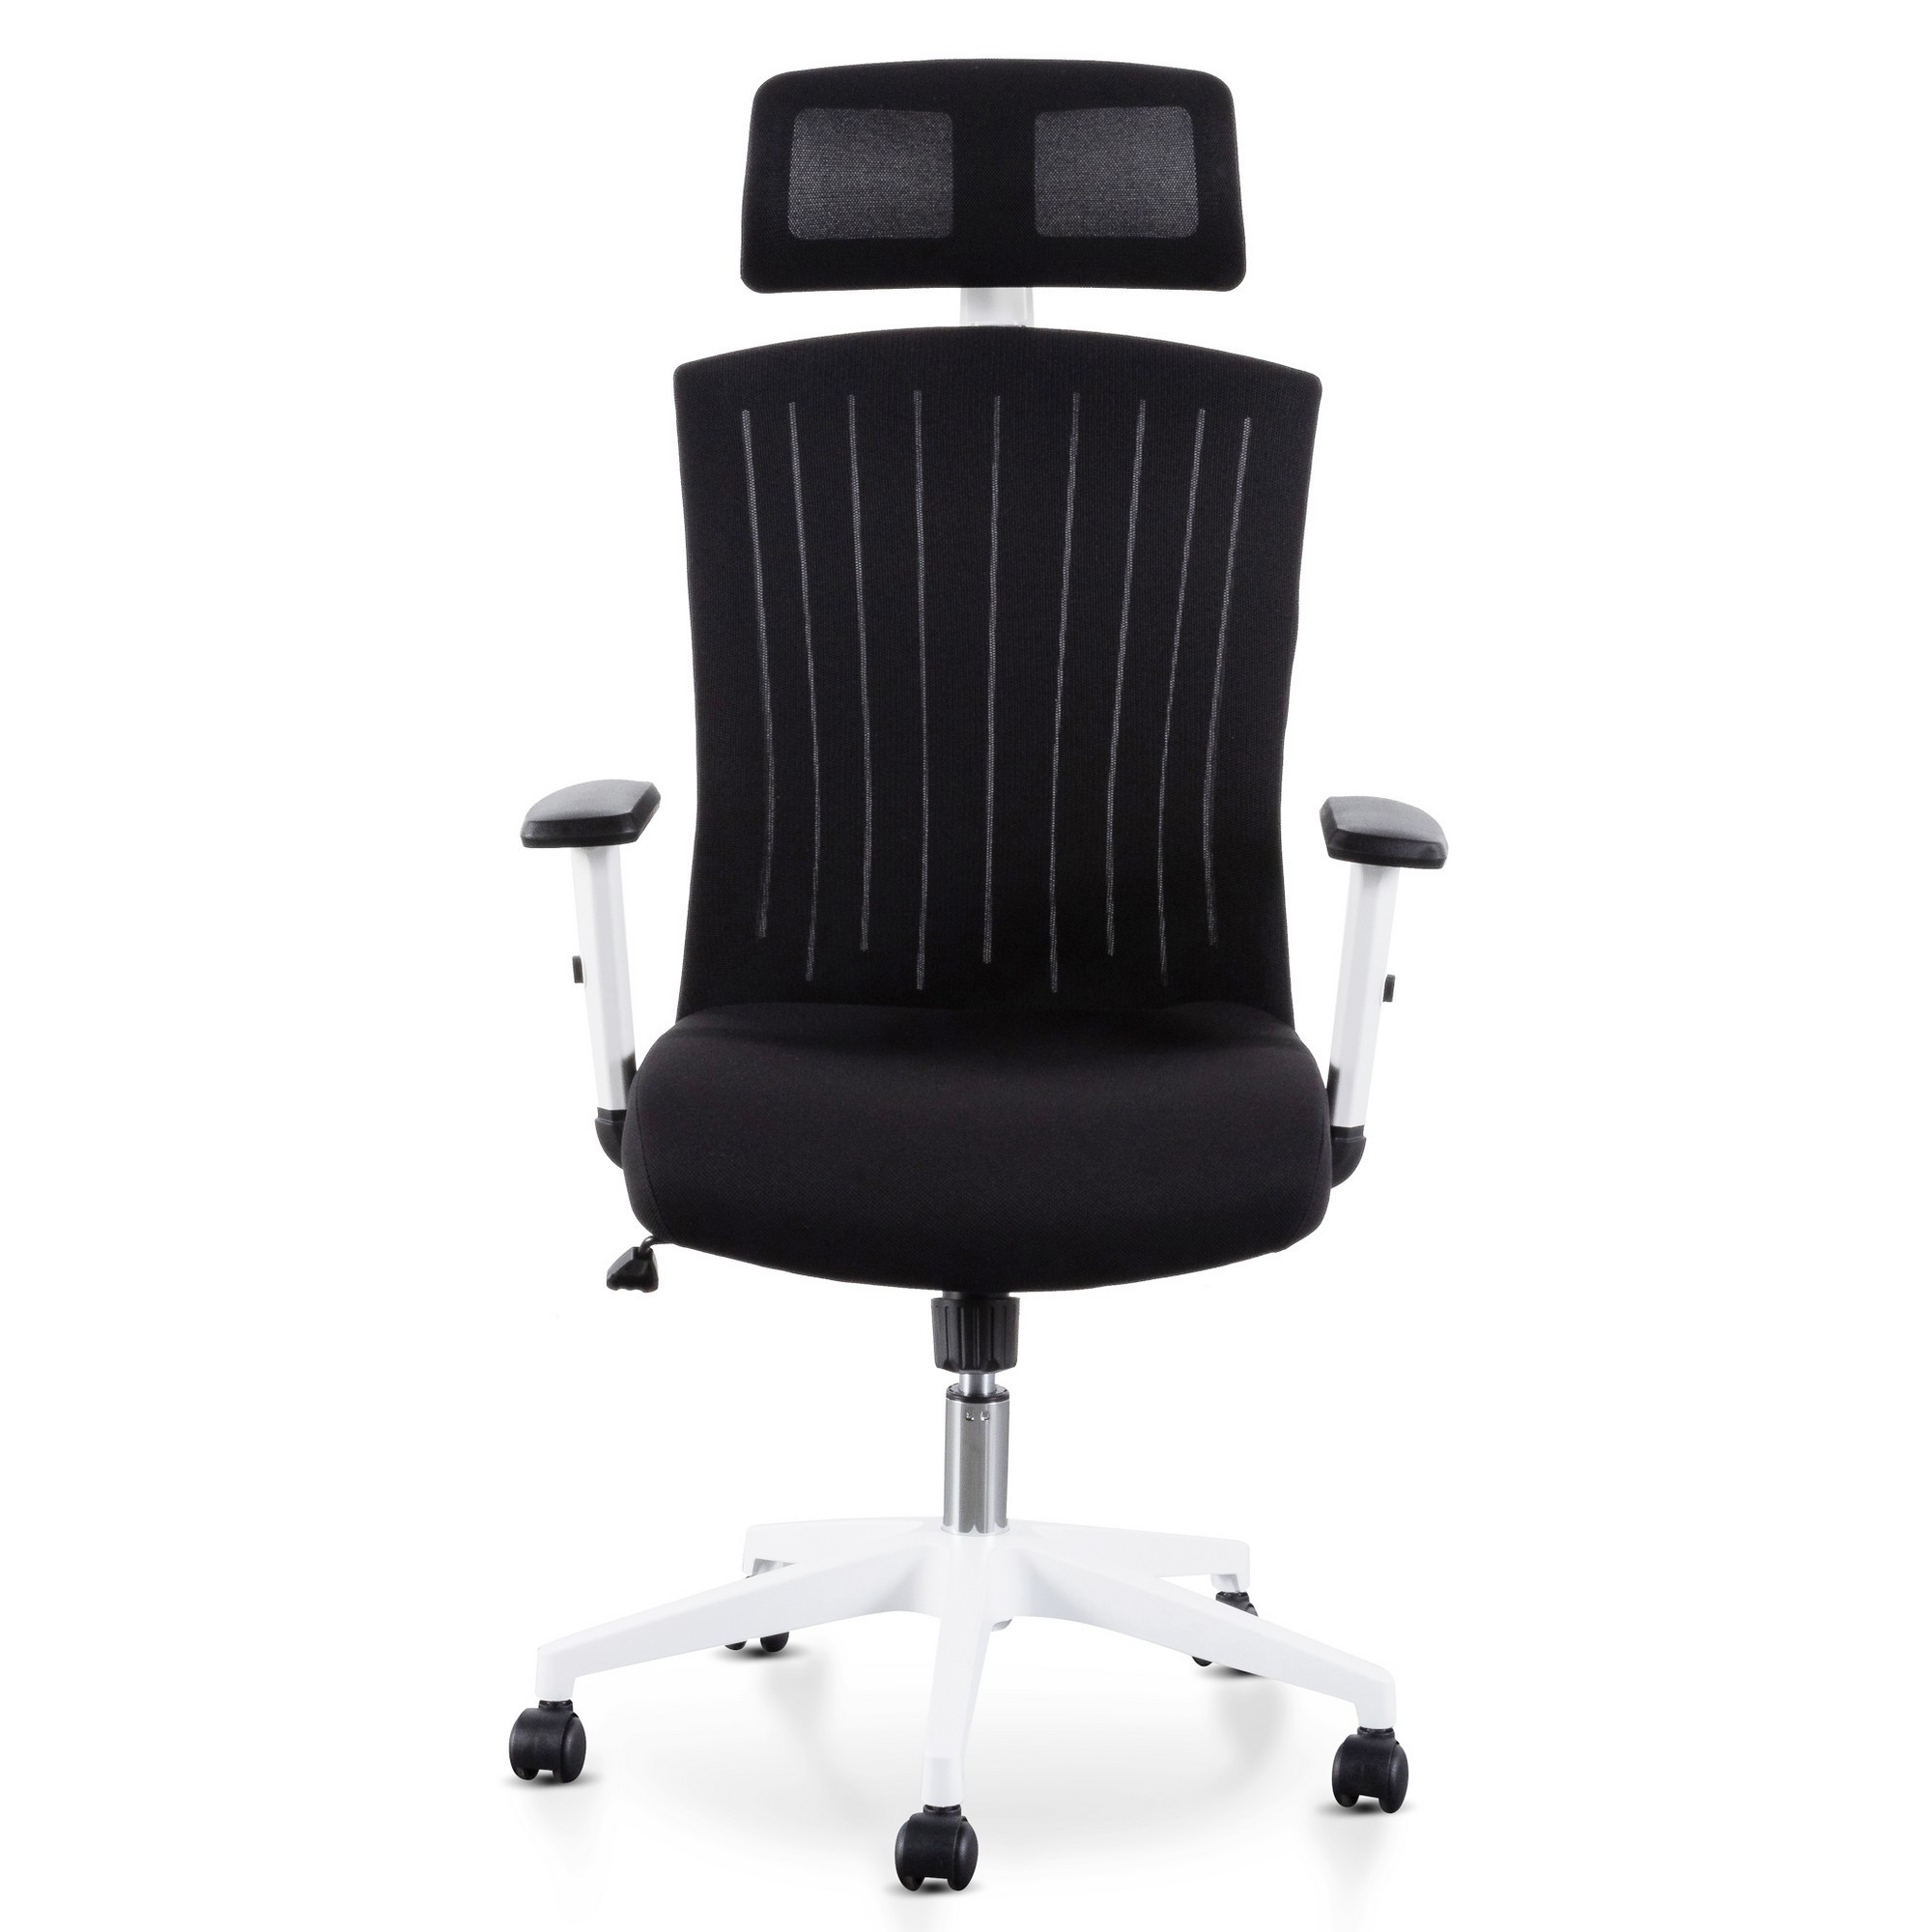 Barnsley Fabric Office Chair, Black / White